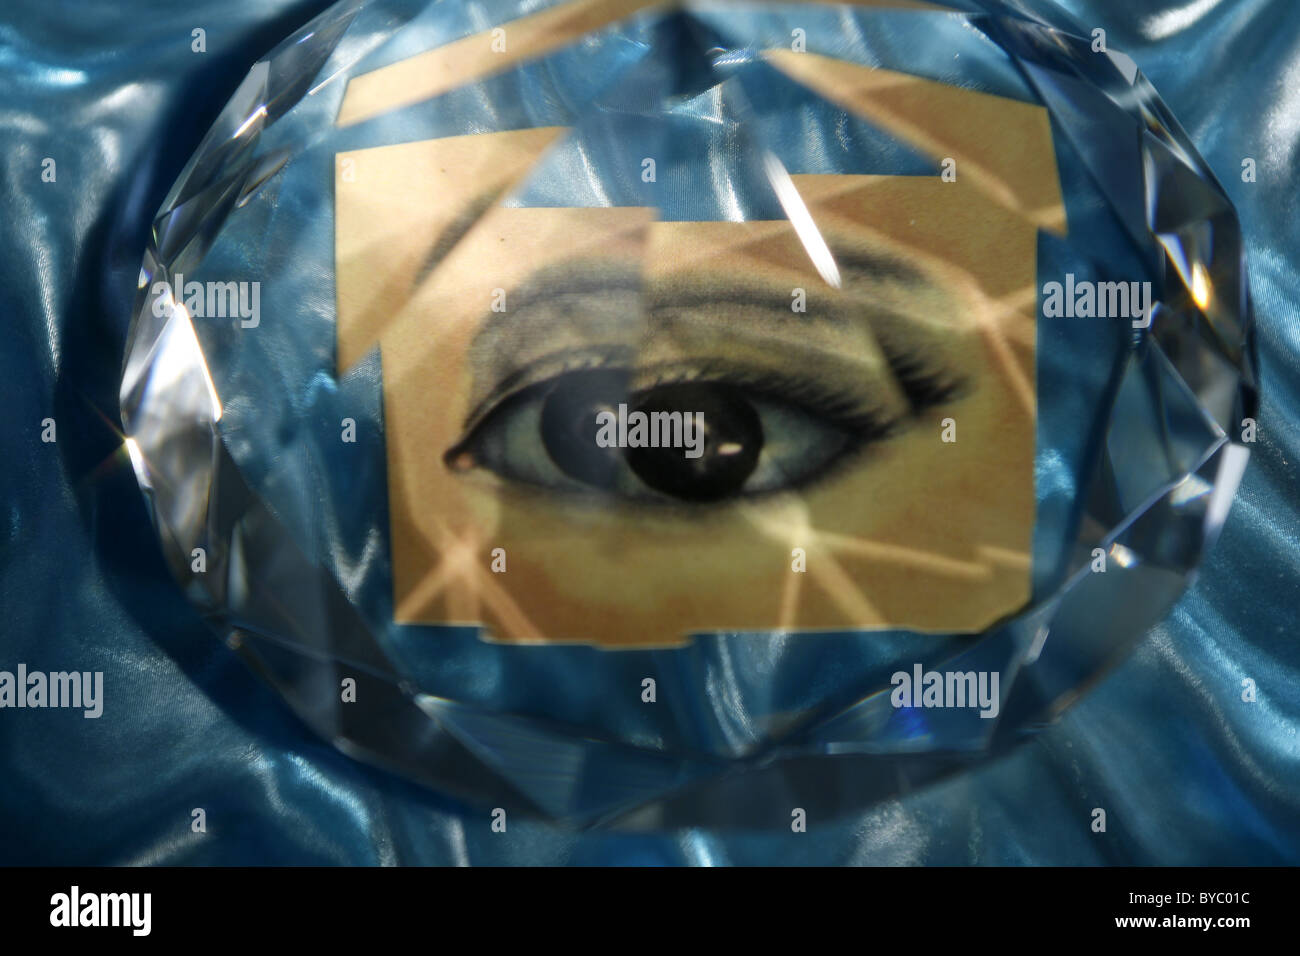 an eye that is multi-faceted, strange vision - Stock Image